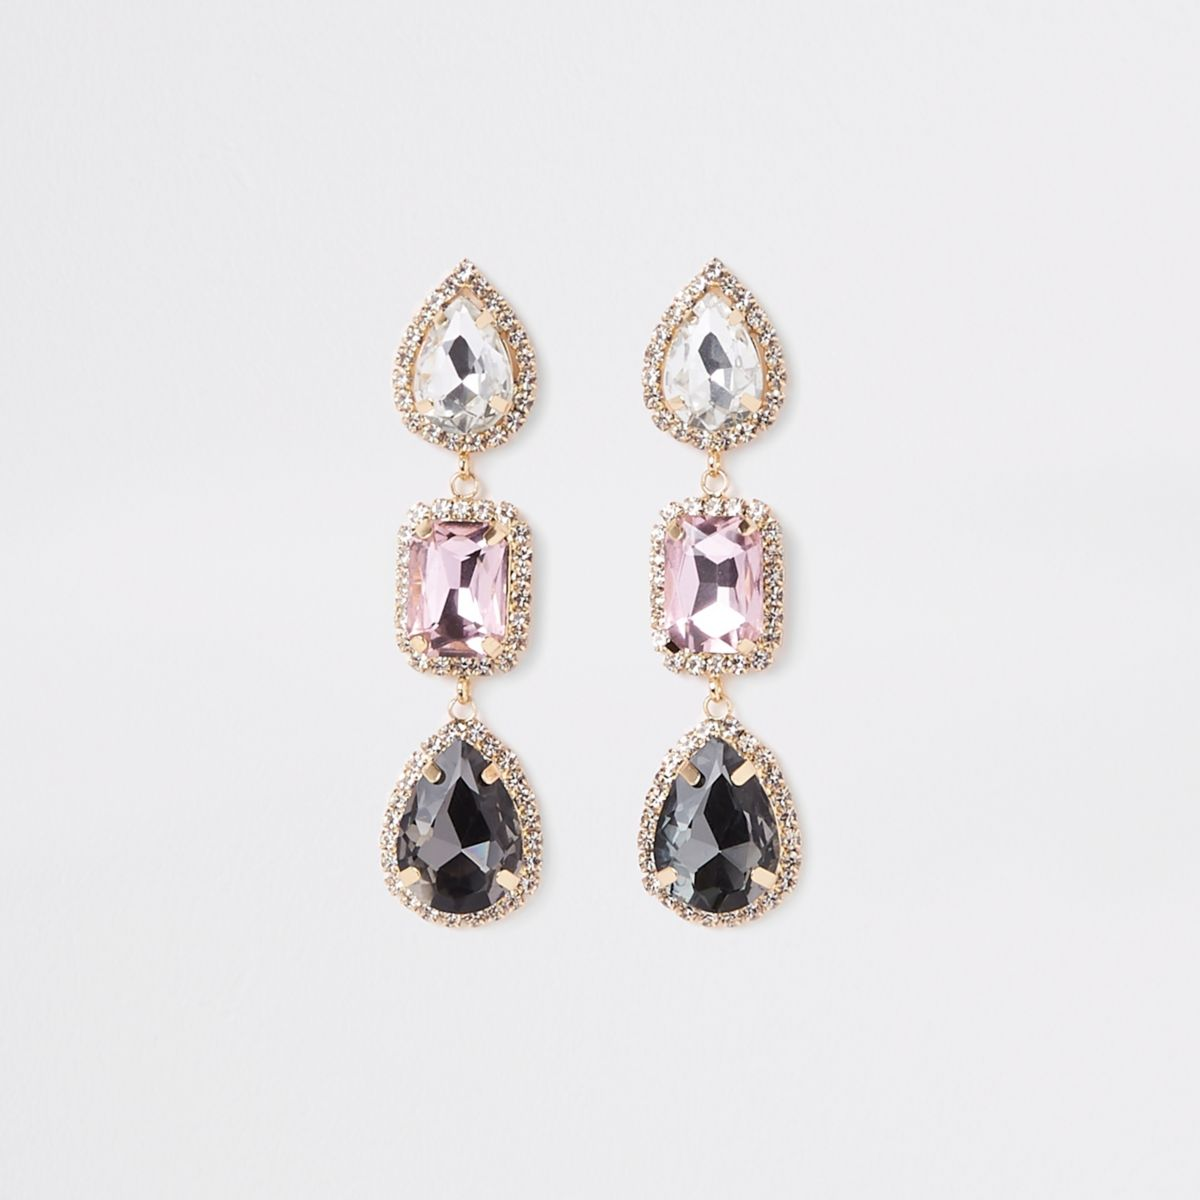 Gold tone rhinestone jewel drop earrings